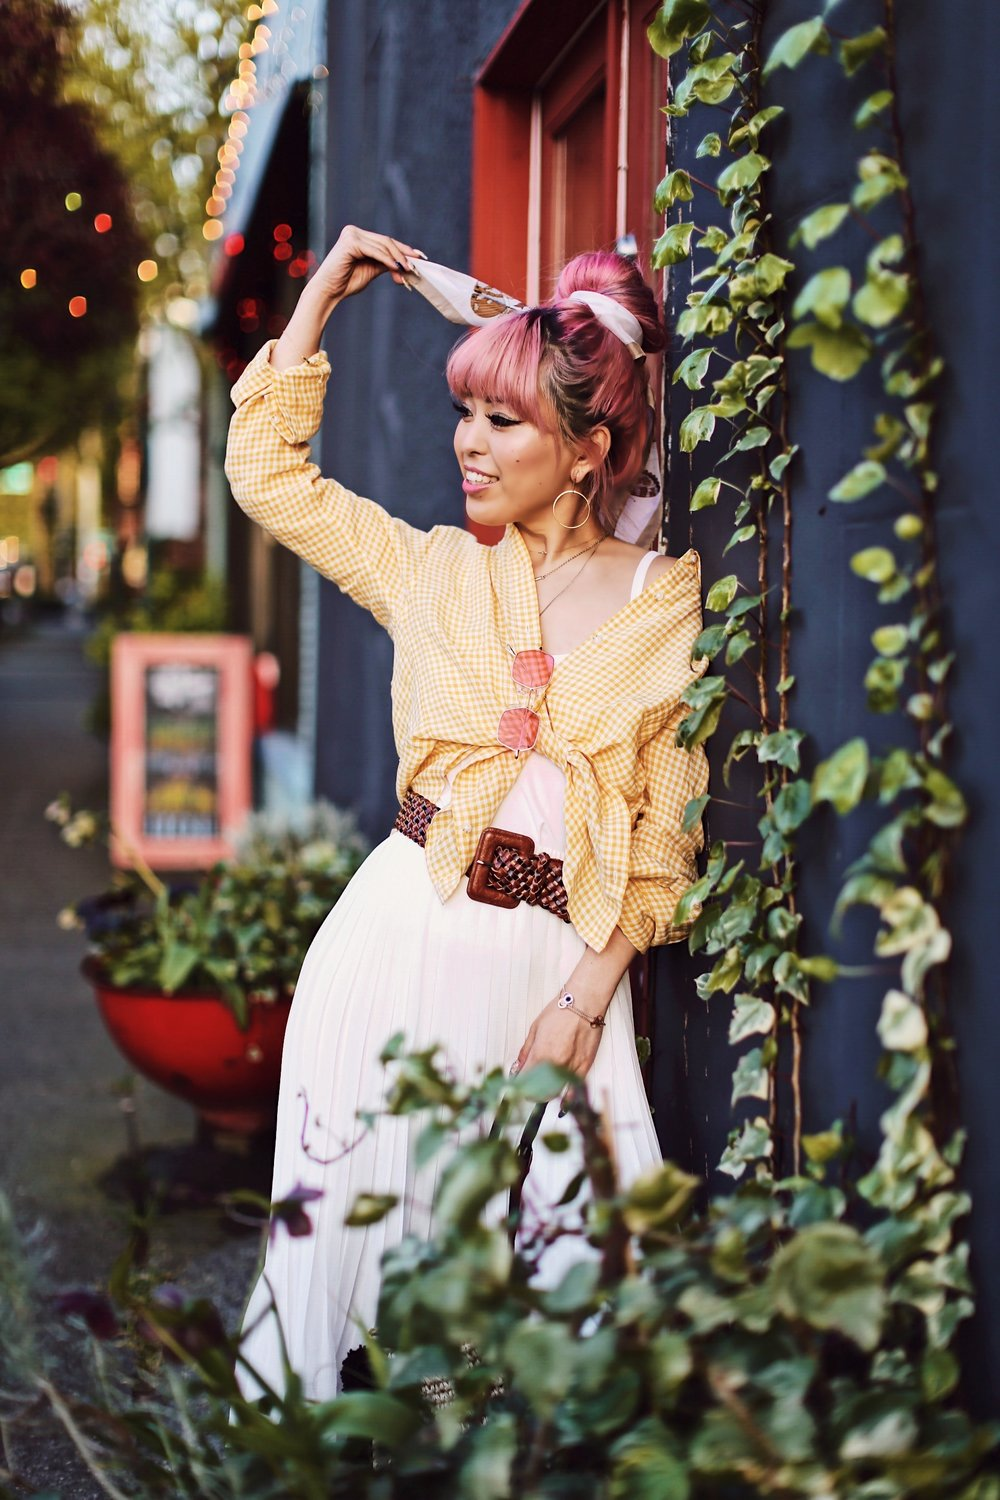 Uniqlo yellow Linen gingham shirt-Uniqlo White pleated chiffon midi skirt-Uniqlo Airism brat-pink tinted sunglasses ZERO UV-She in Pom pom Straw bucket bag-Vintage scarf bun hair style-Steve Madden Belt-Jane and the shoe denim oxford platforms-Aika's Love Closet-seattle fashion style blogger-Japanese-pink hair-smiling-spring fashion 5